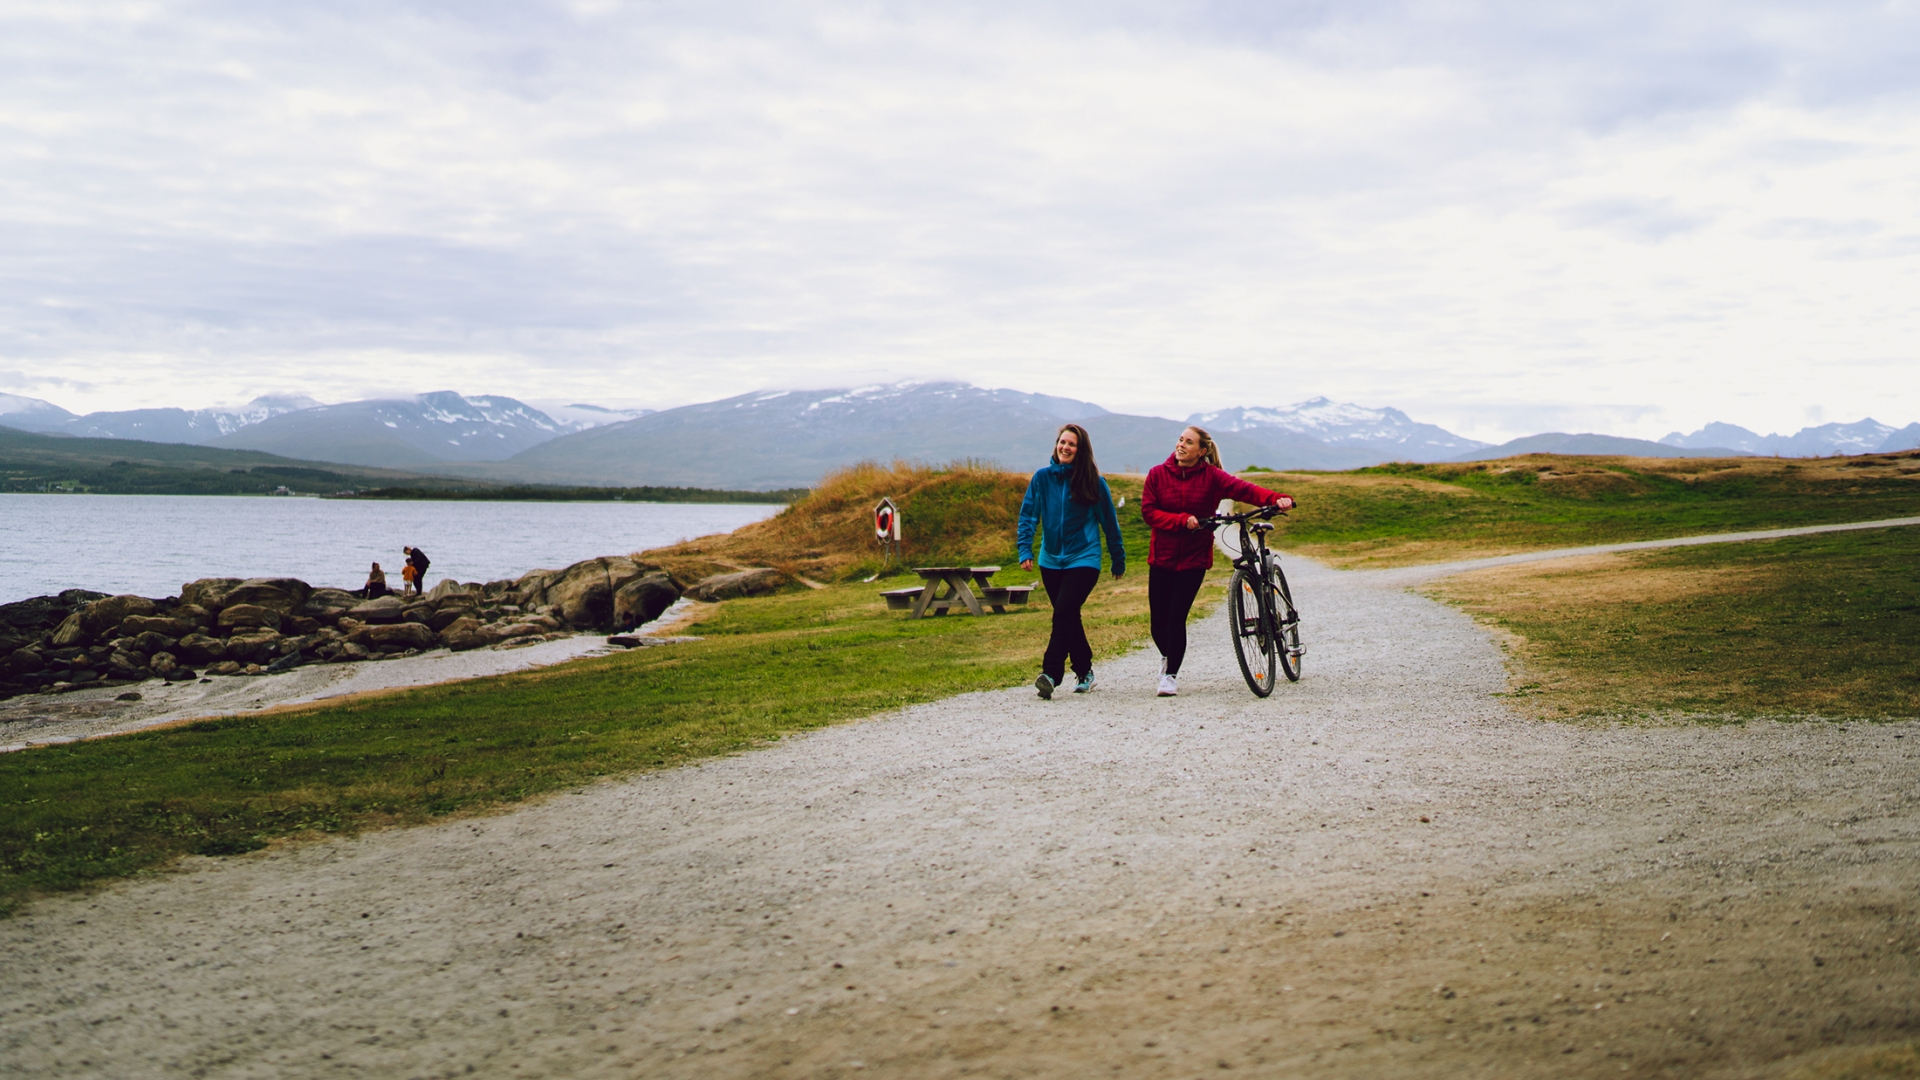 Girls walking with bicycles in Telegrafbukta